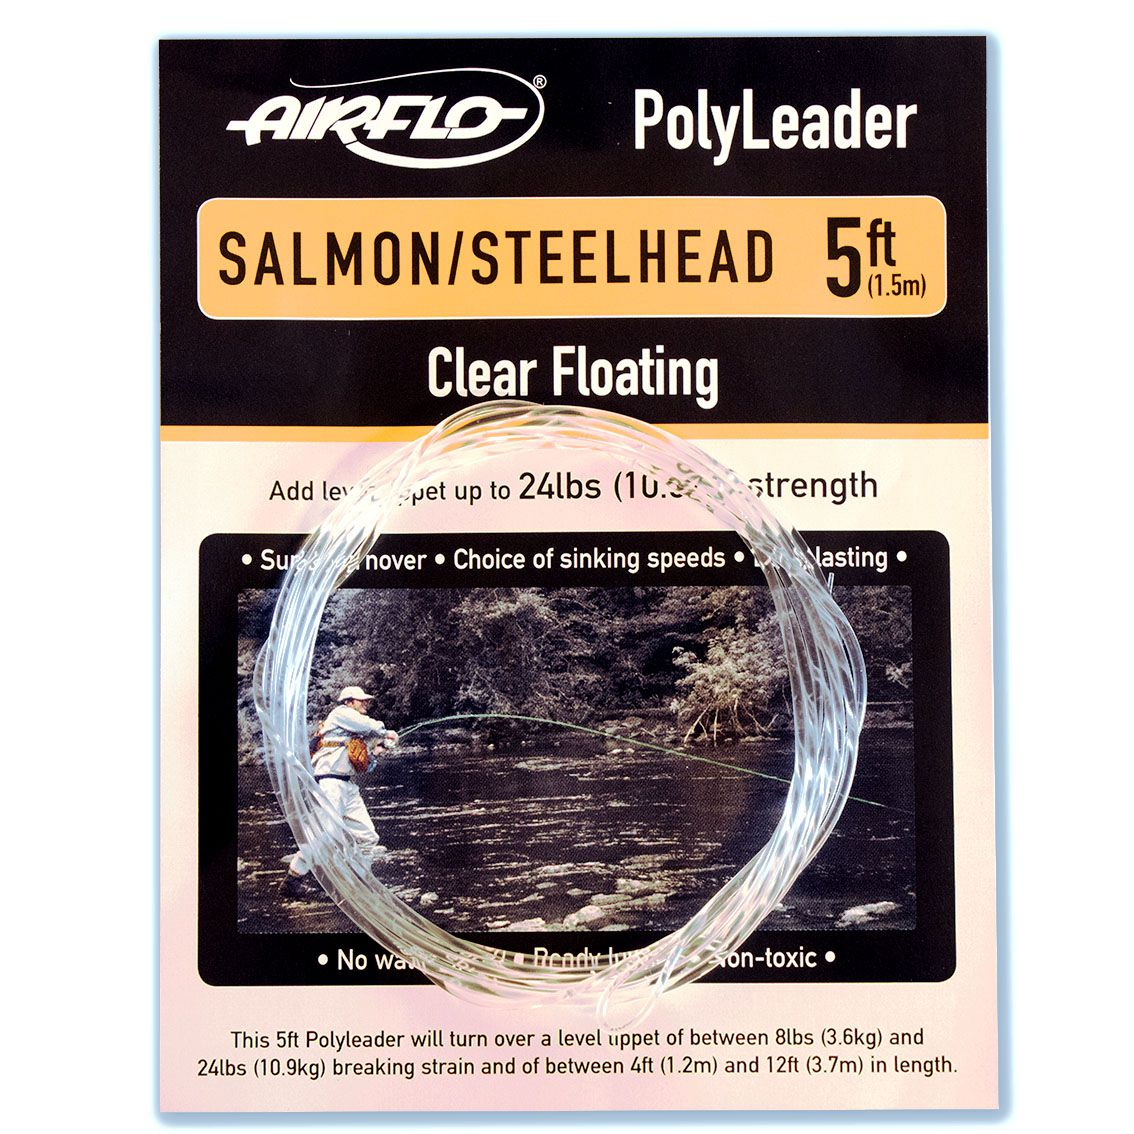 Polyleader Airflo Salmon Steelhead 5' (Floating)